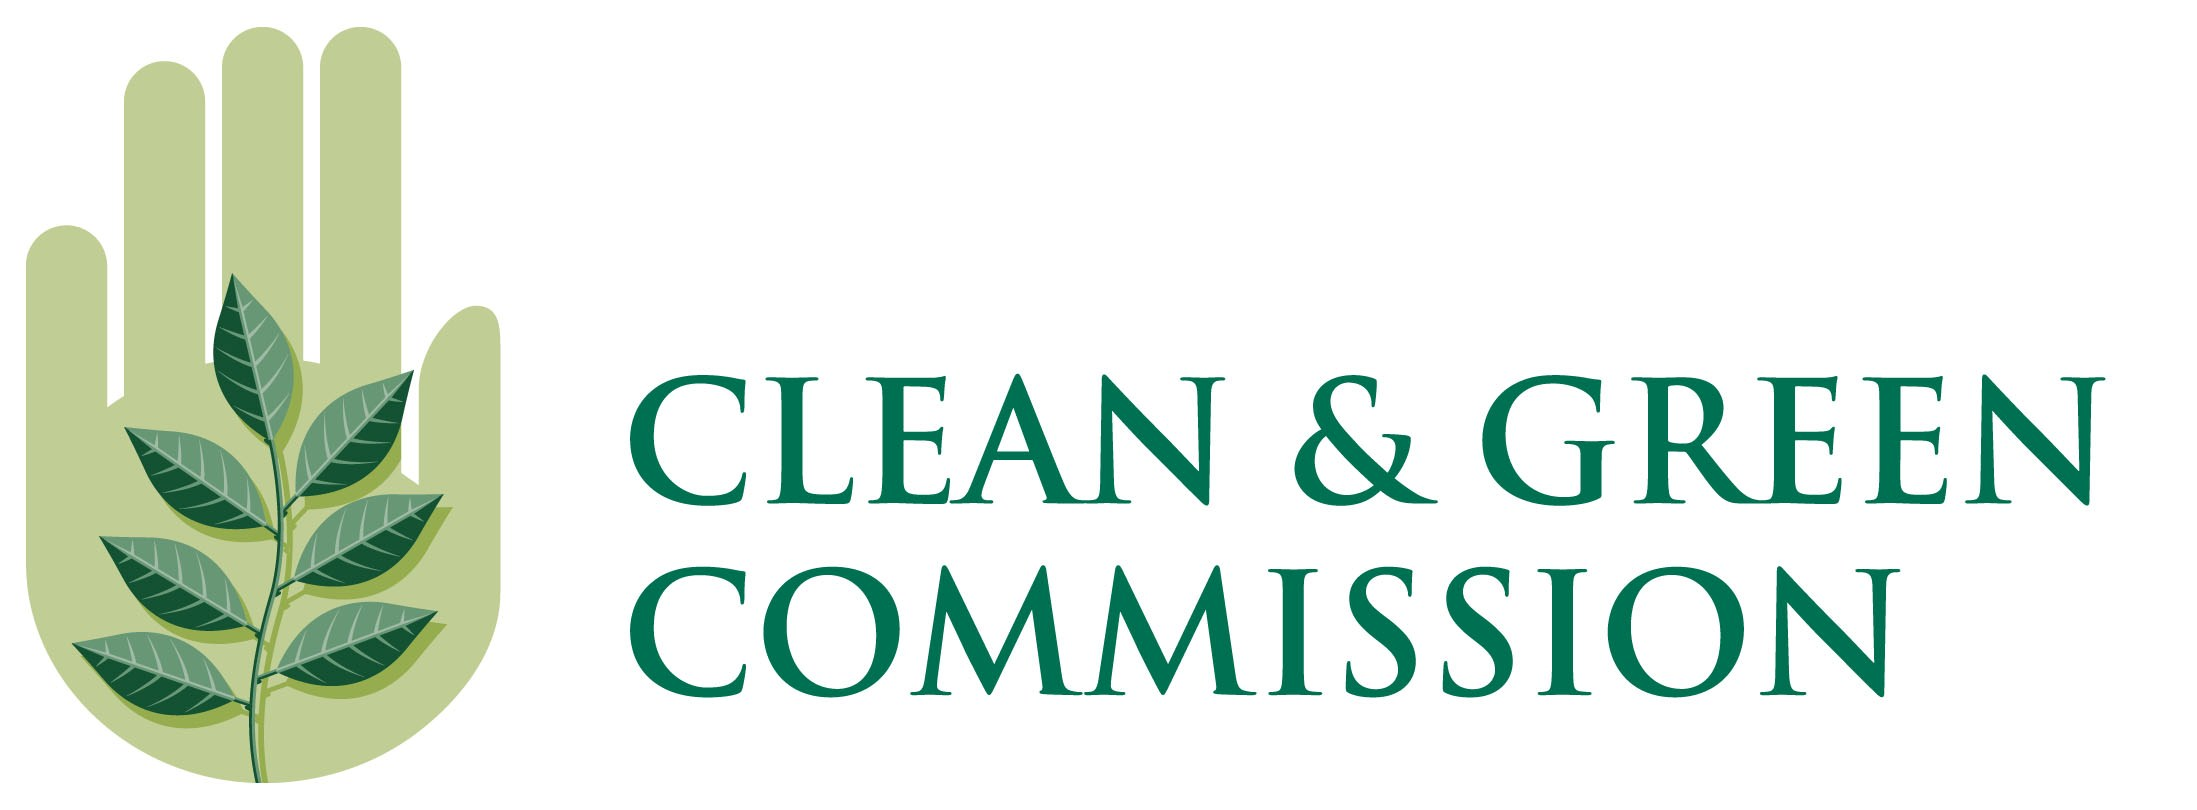 Clean Green Commission logo.jpg